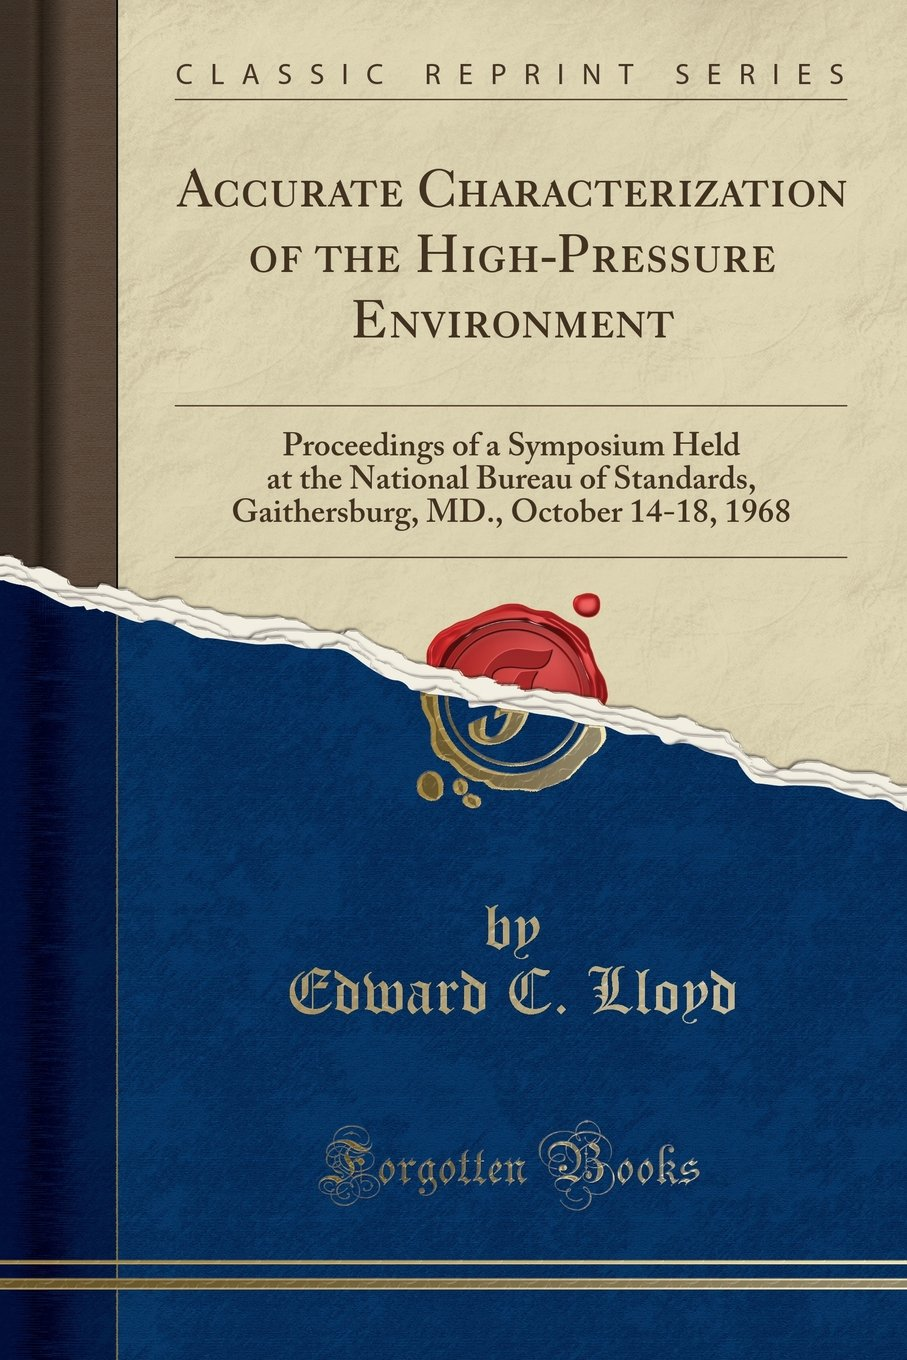 Accurate Characterization of the High-Pressure Environment: Proceedings of a Symposium Held at the National Bureau of Standards, Gaithersburg, MD., October 14-18, 1968 (Classic Reprint) ebook